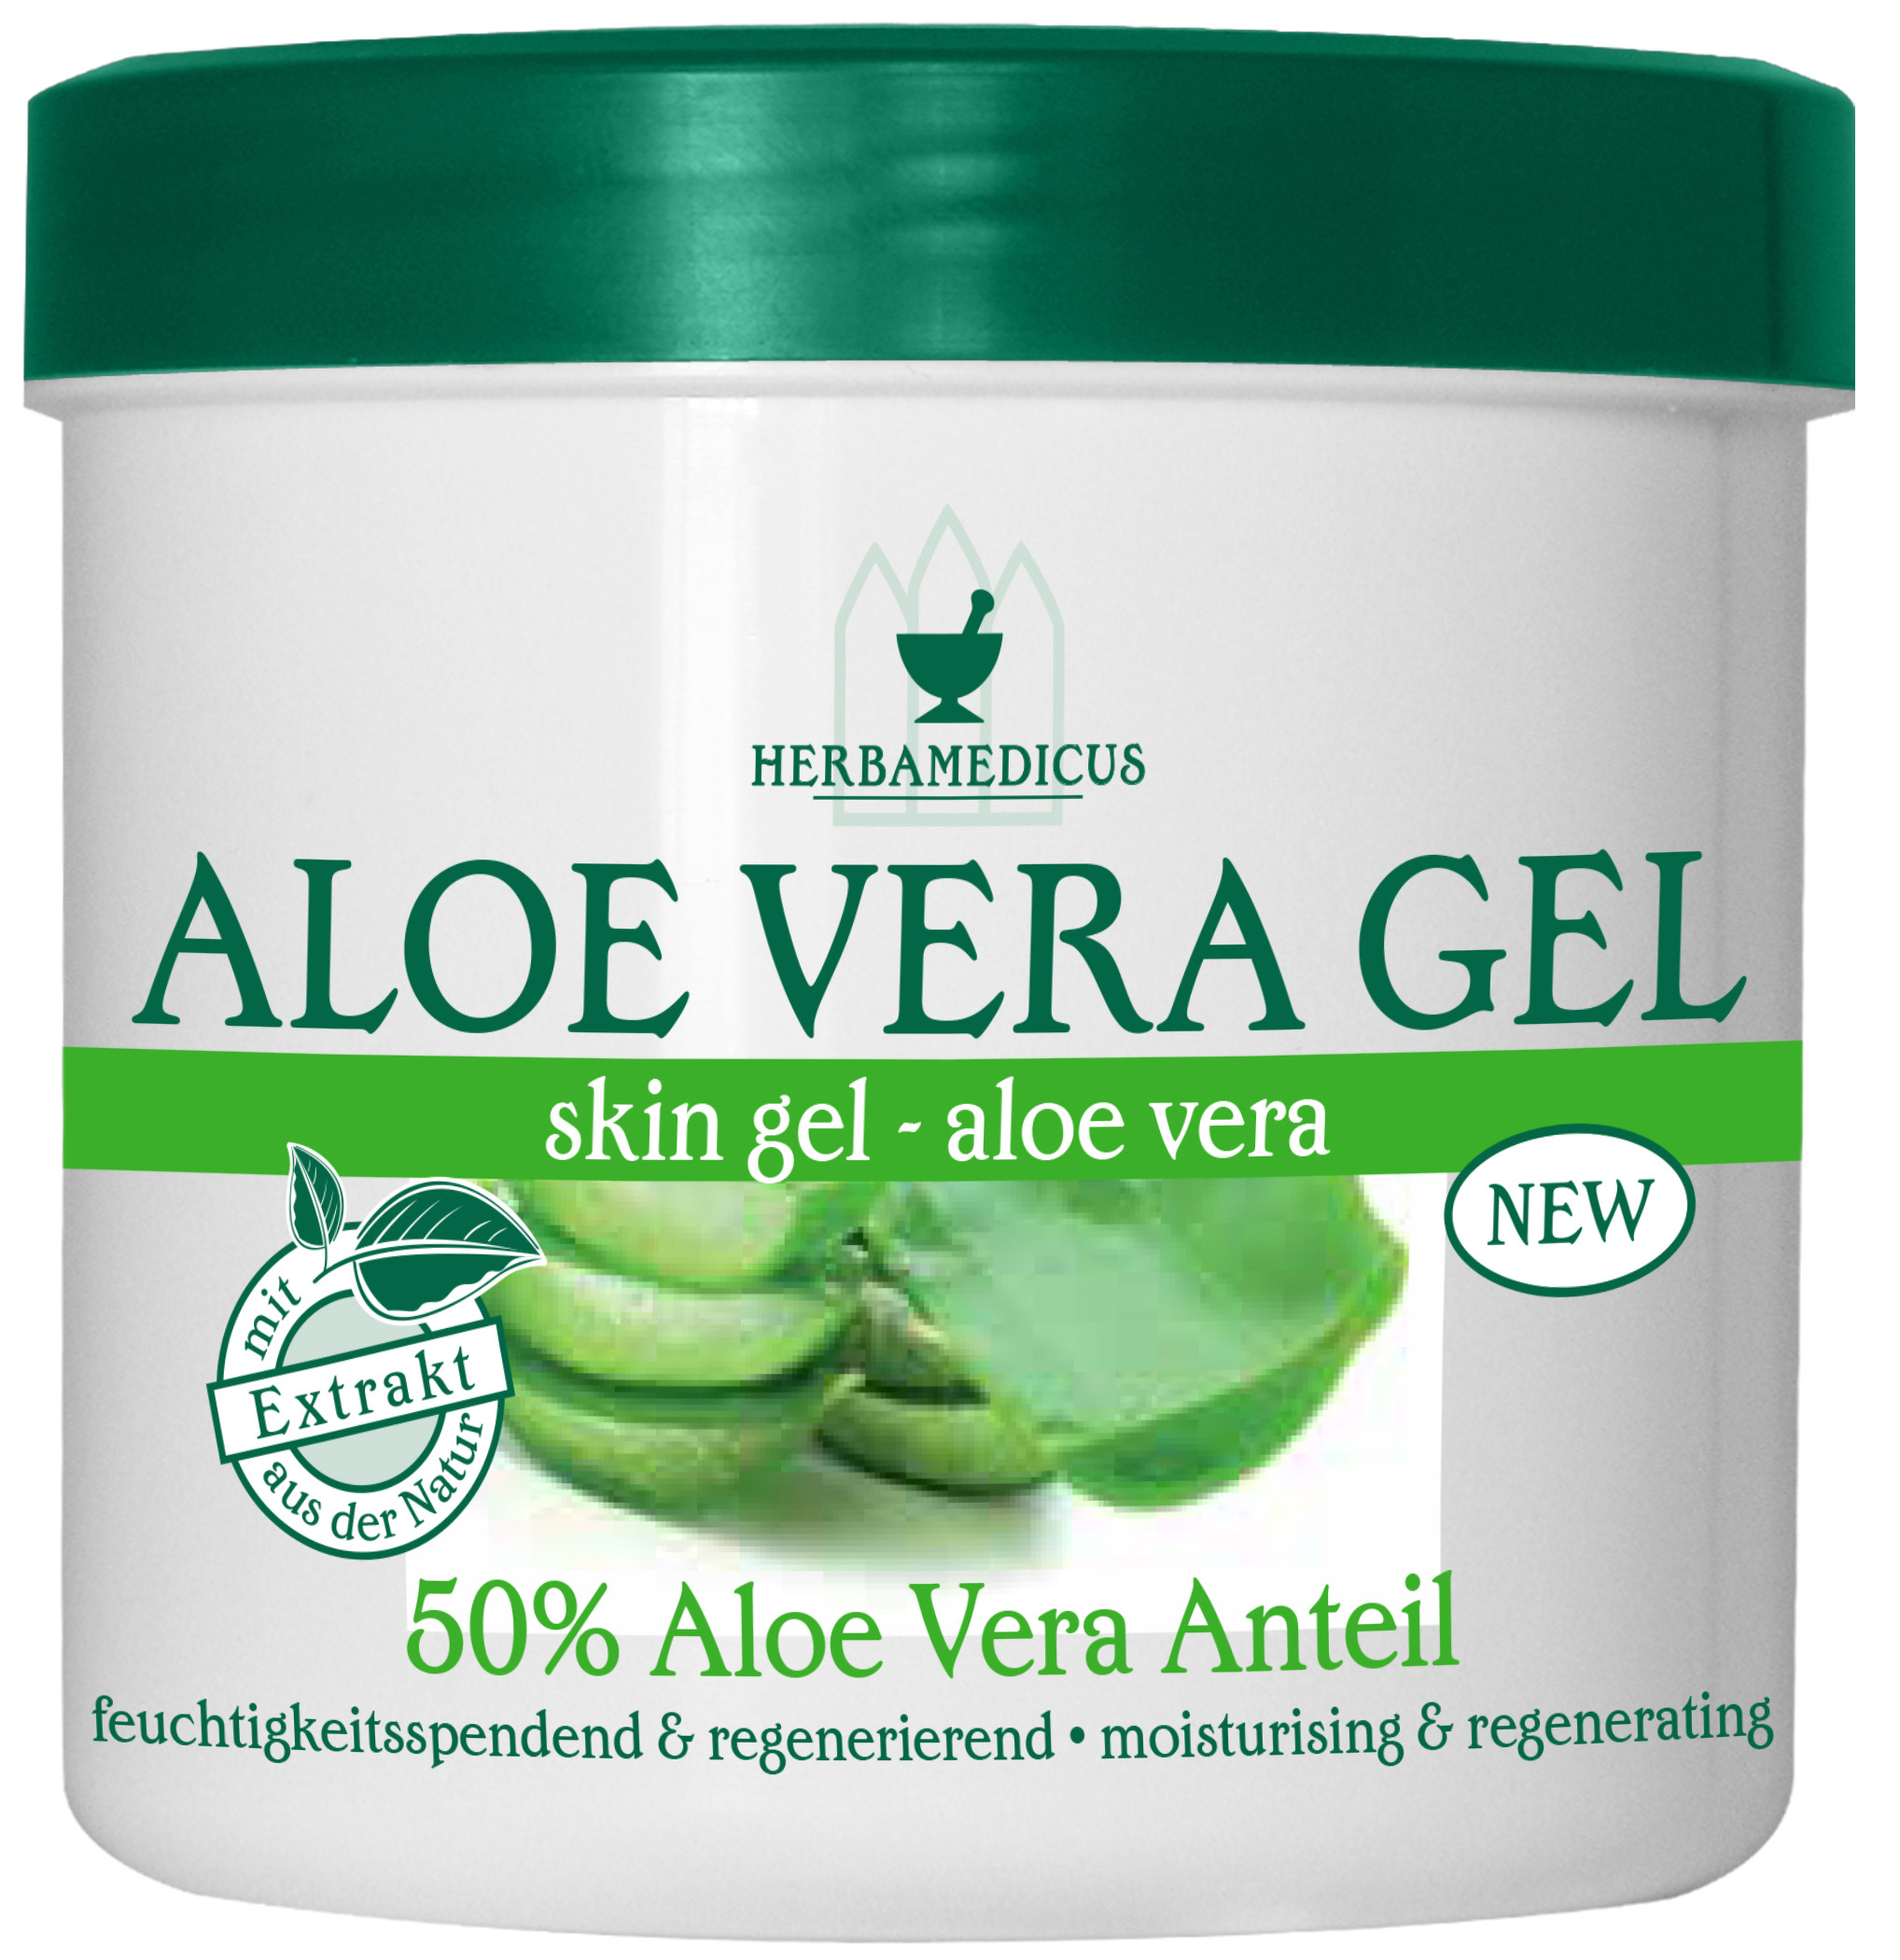 01829 - Herbamedicus Aloe Vera Gel 250 ml